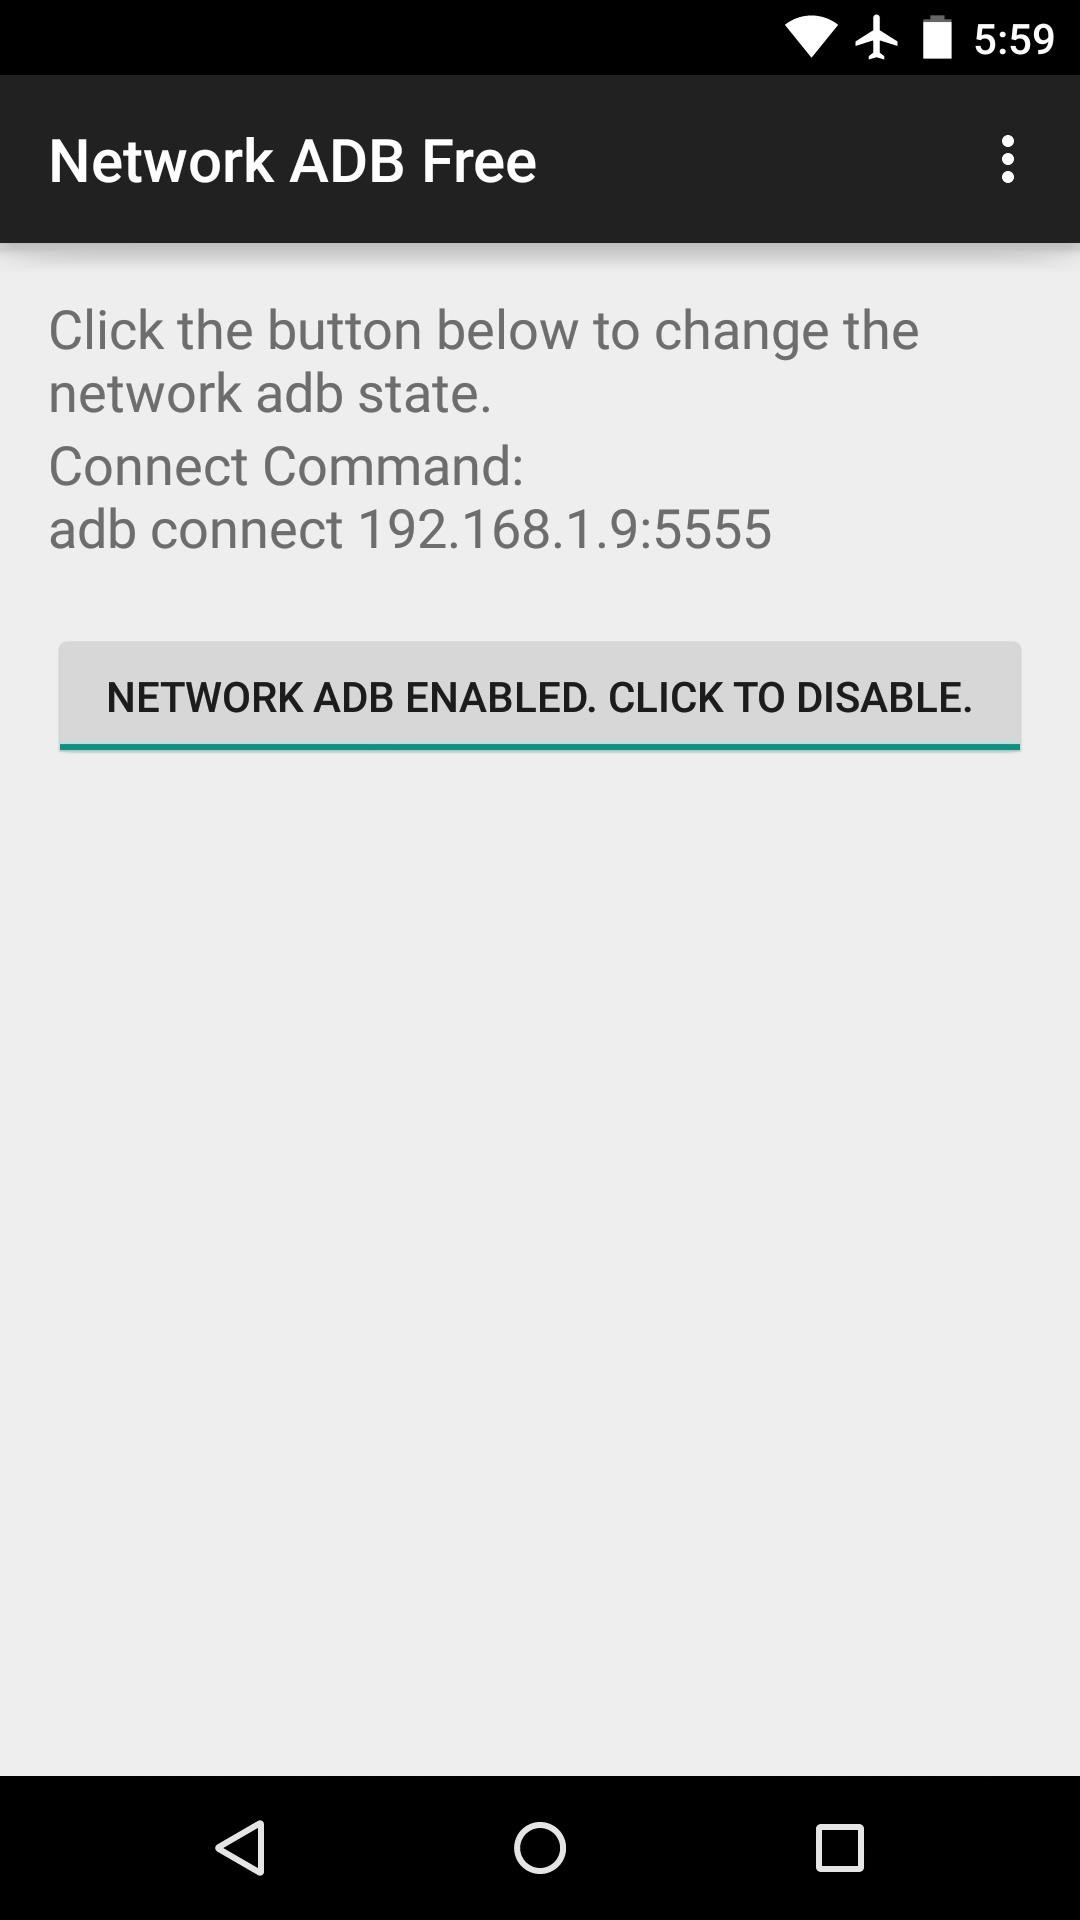 How to Send ADB Commands Over Wi-Fi on Android